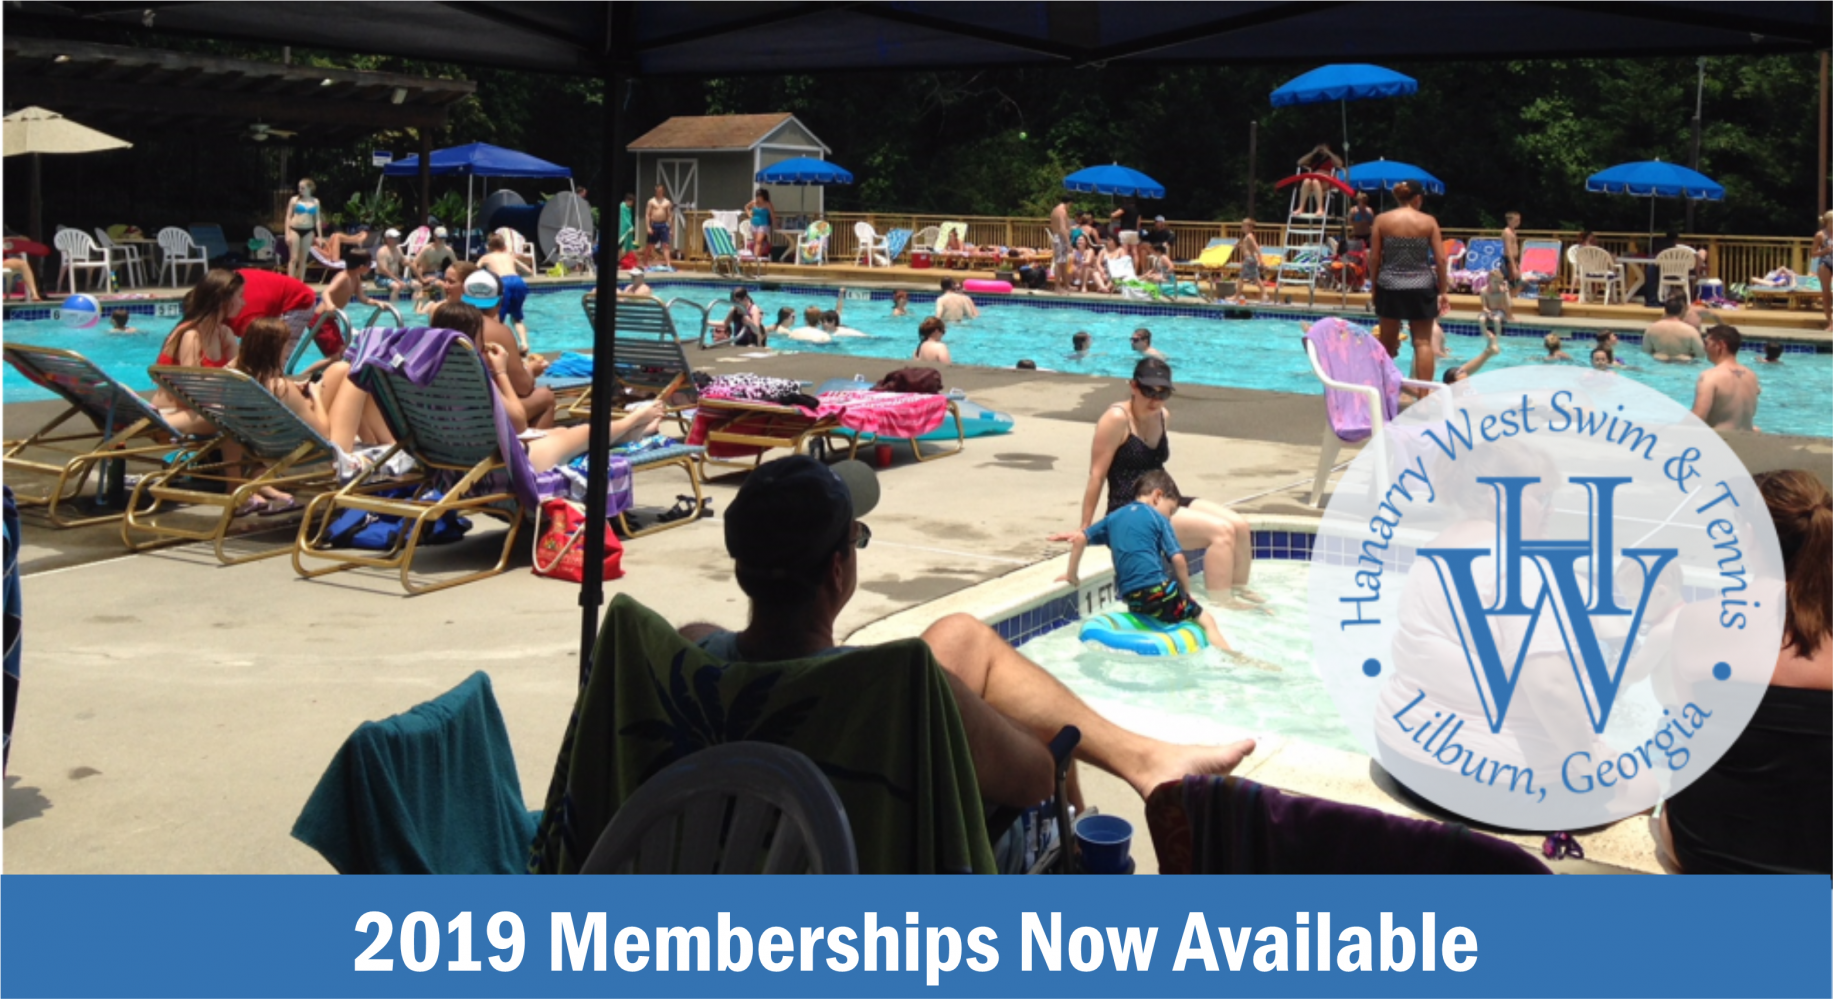 2020 Memberships Now Available